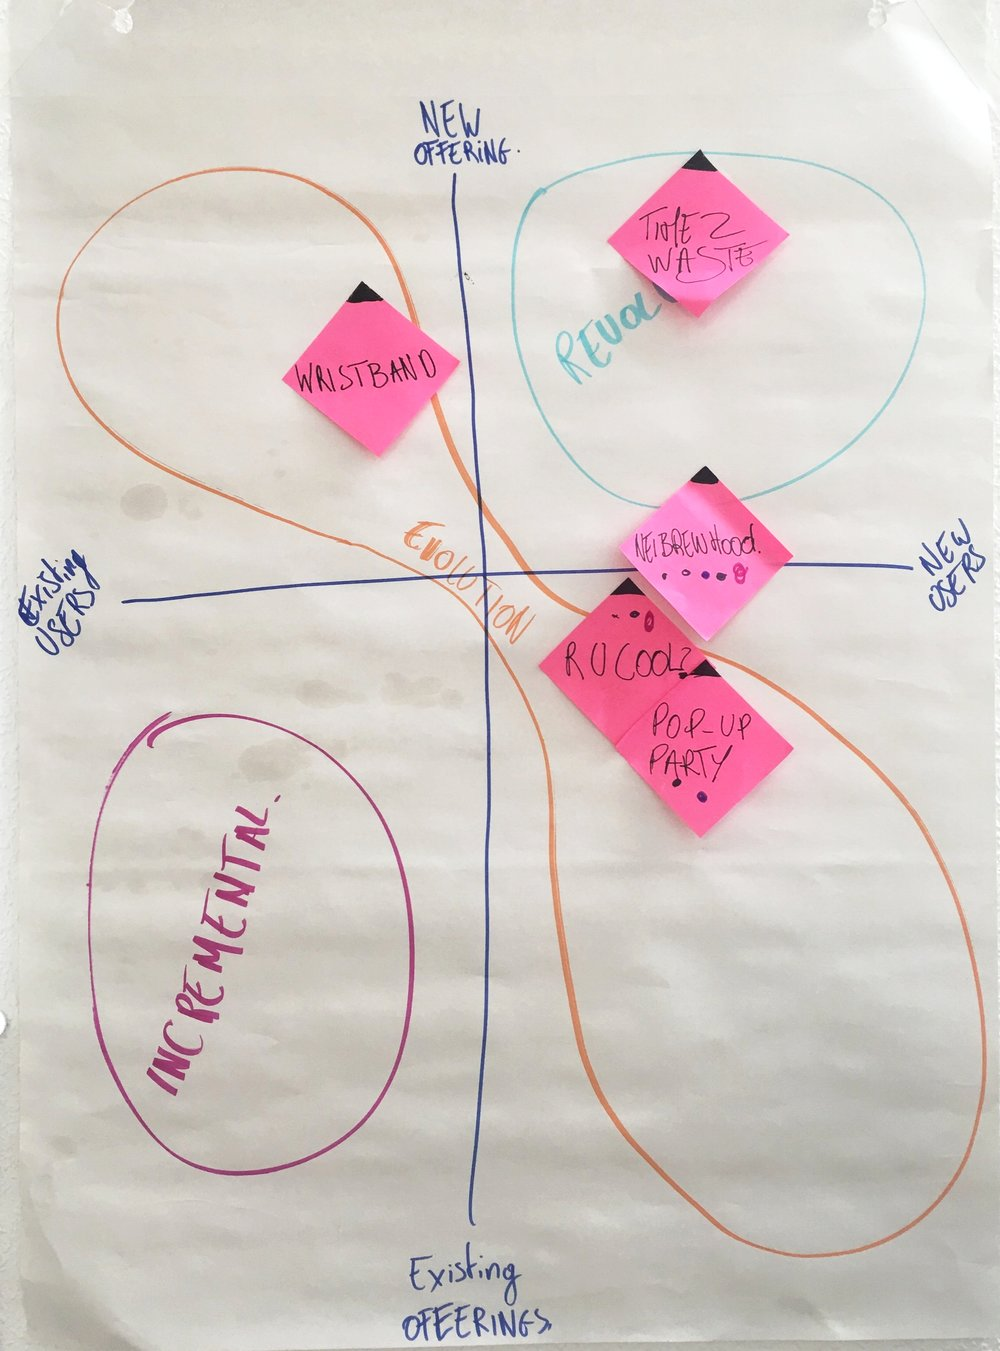 Innovation Matrix: We placed top ideas on a matrix of New/Existing users and offerings.